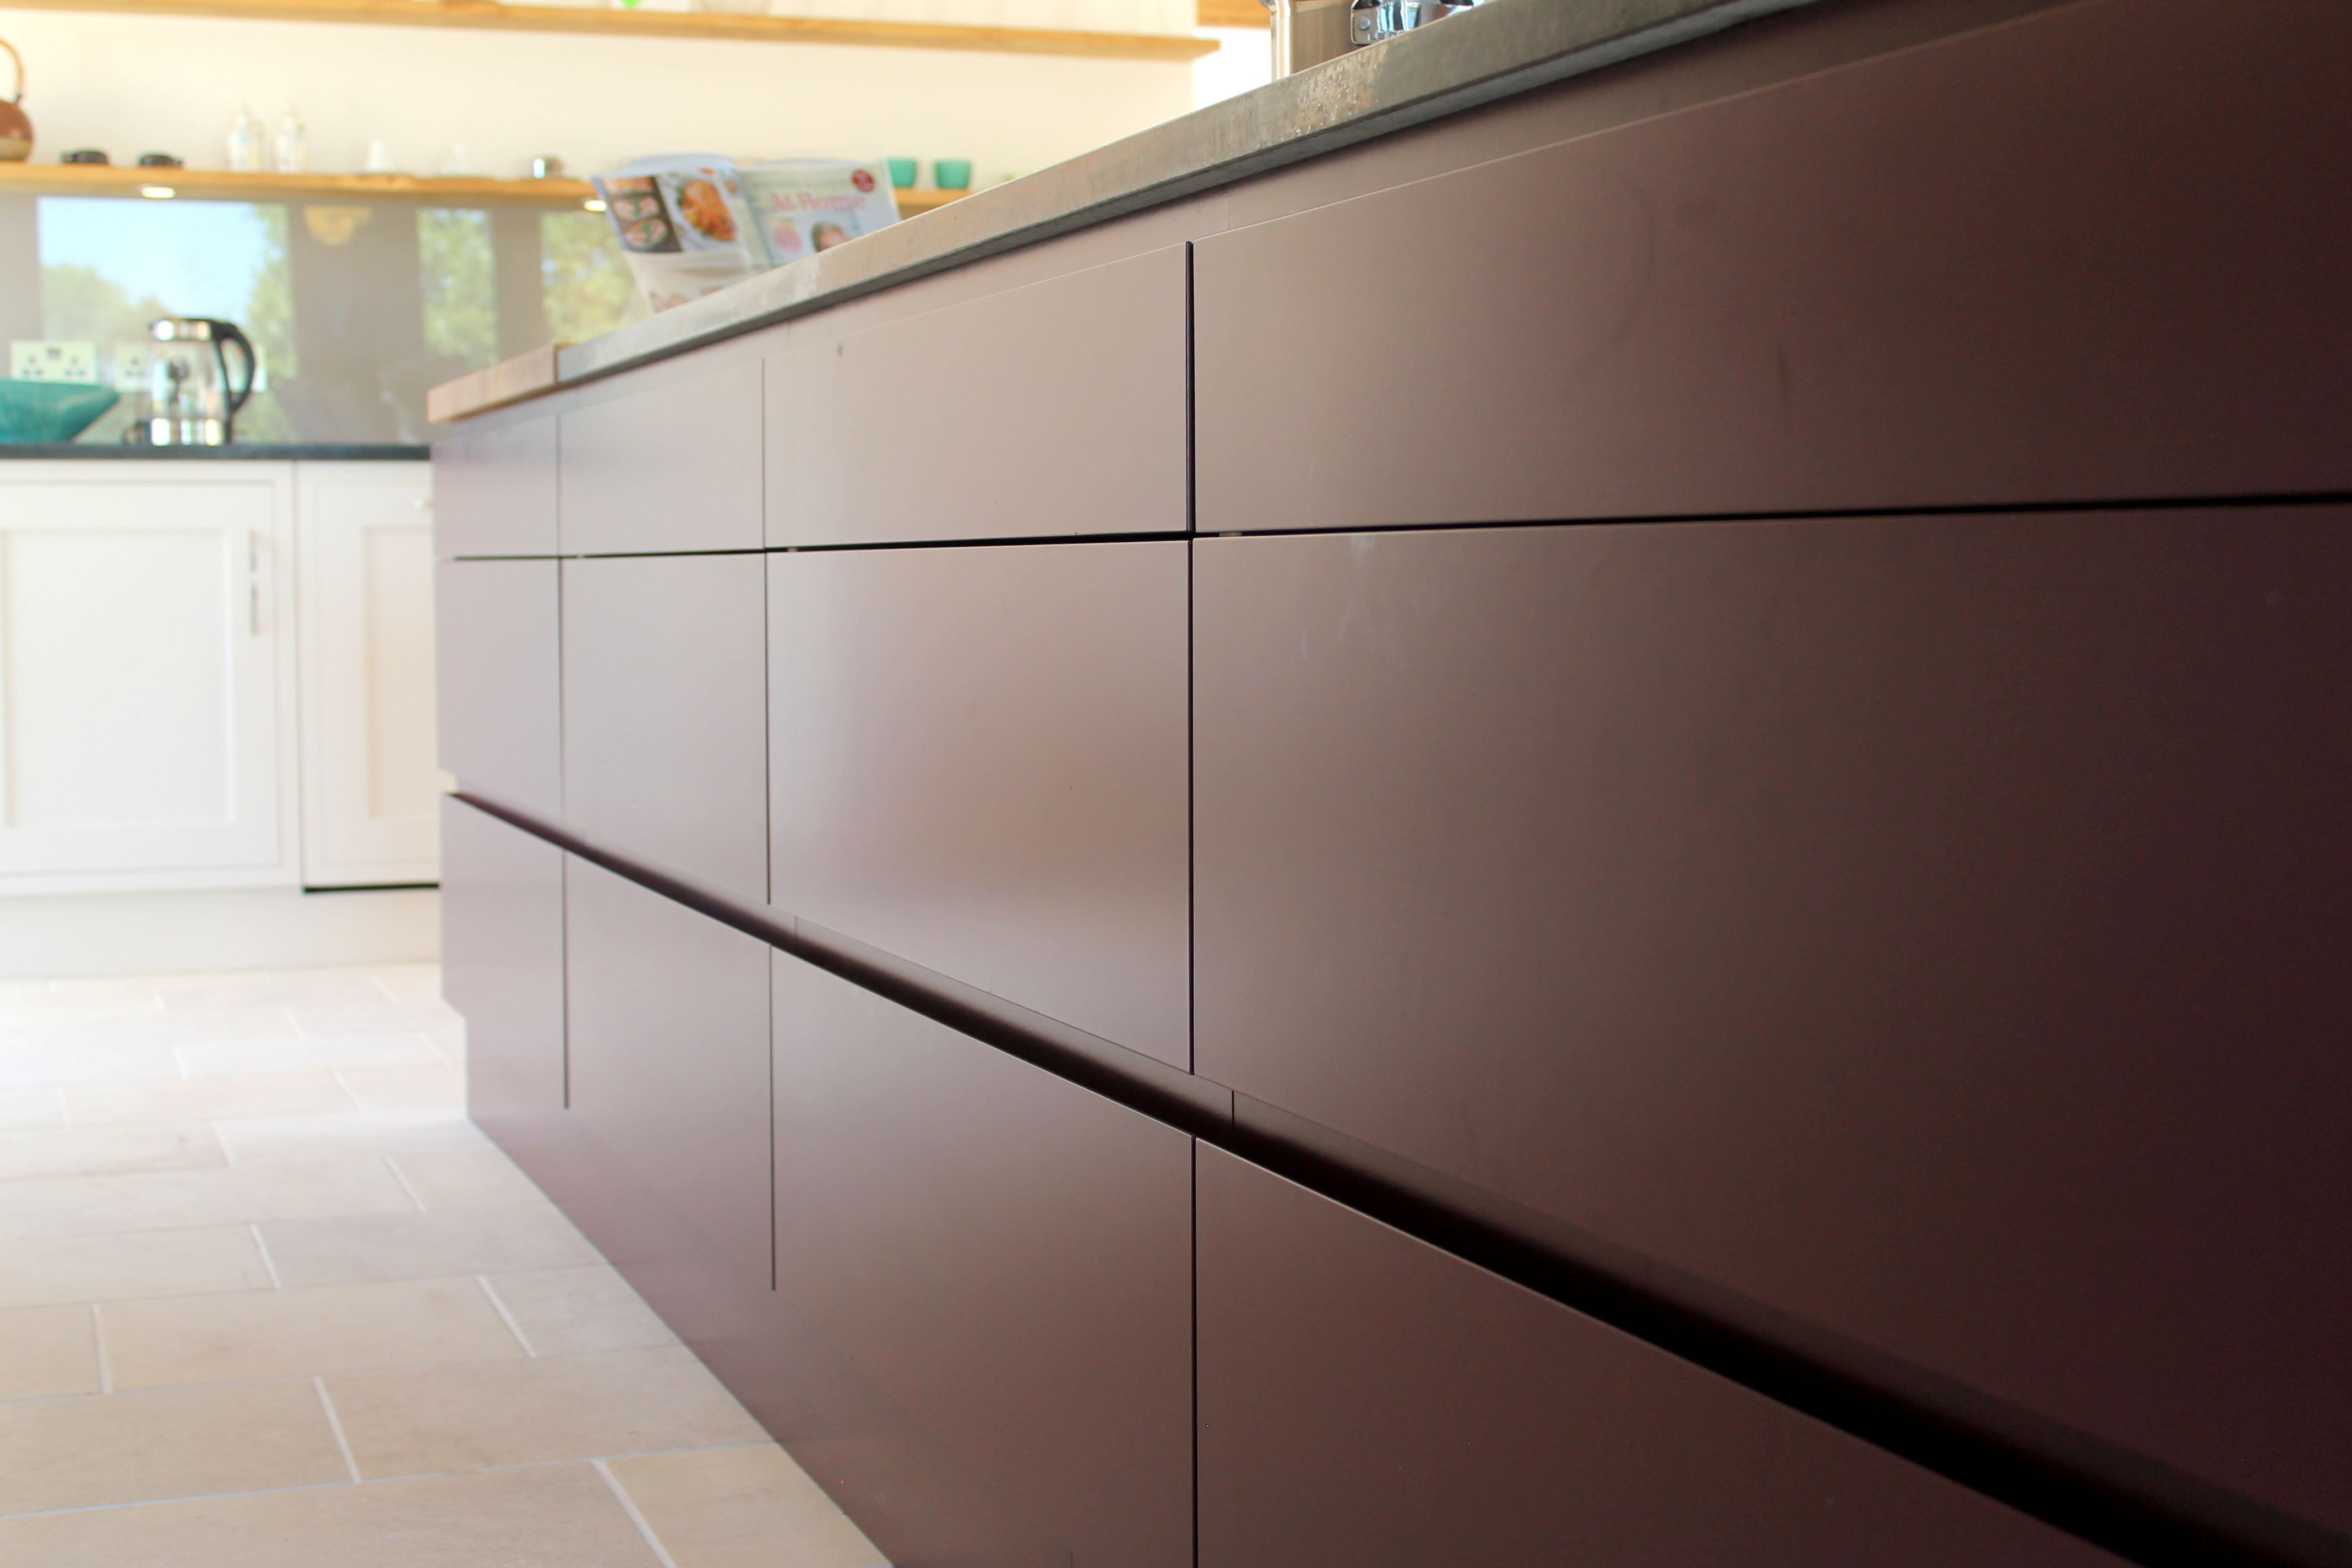 English bespoke handmade kitchens by Krantz Designs. www